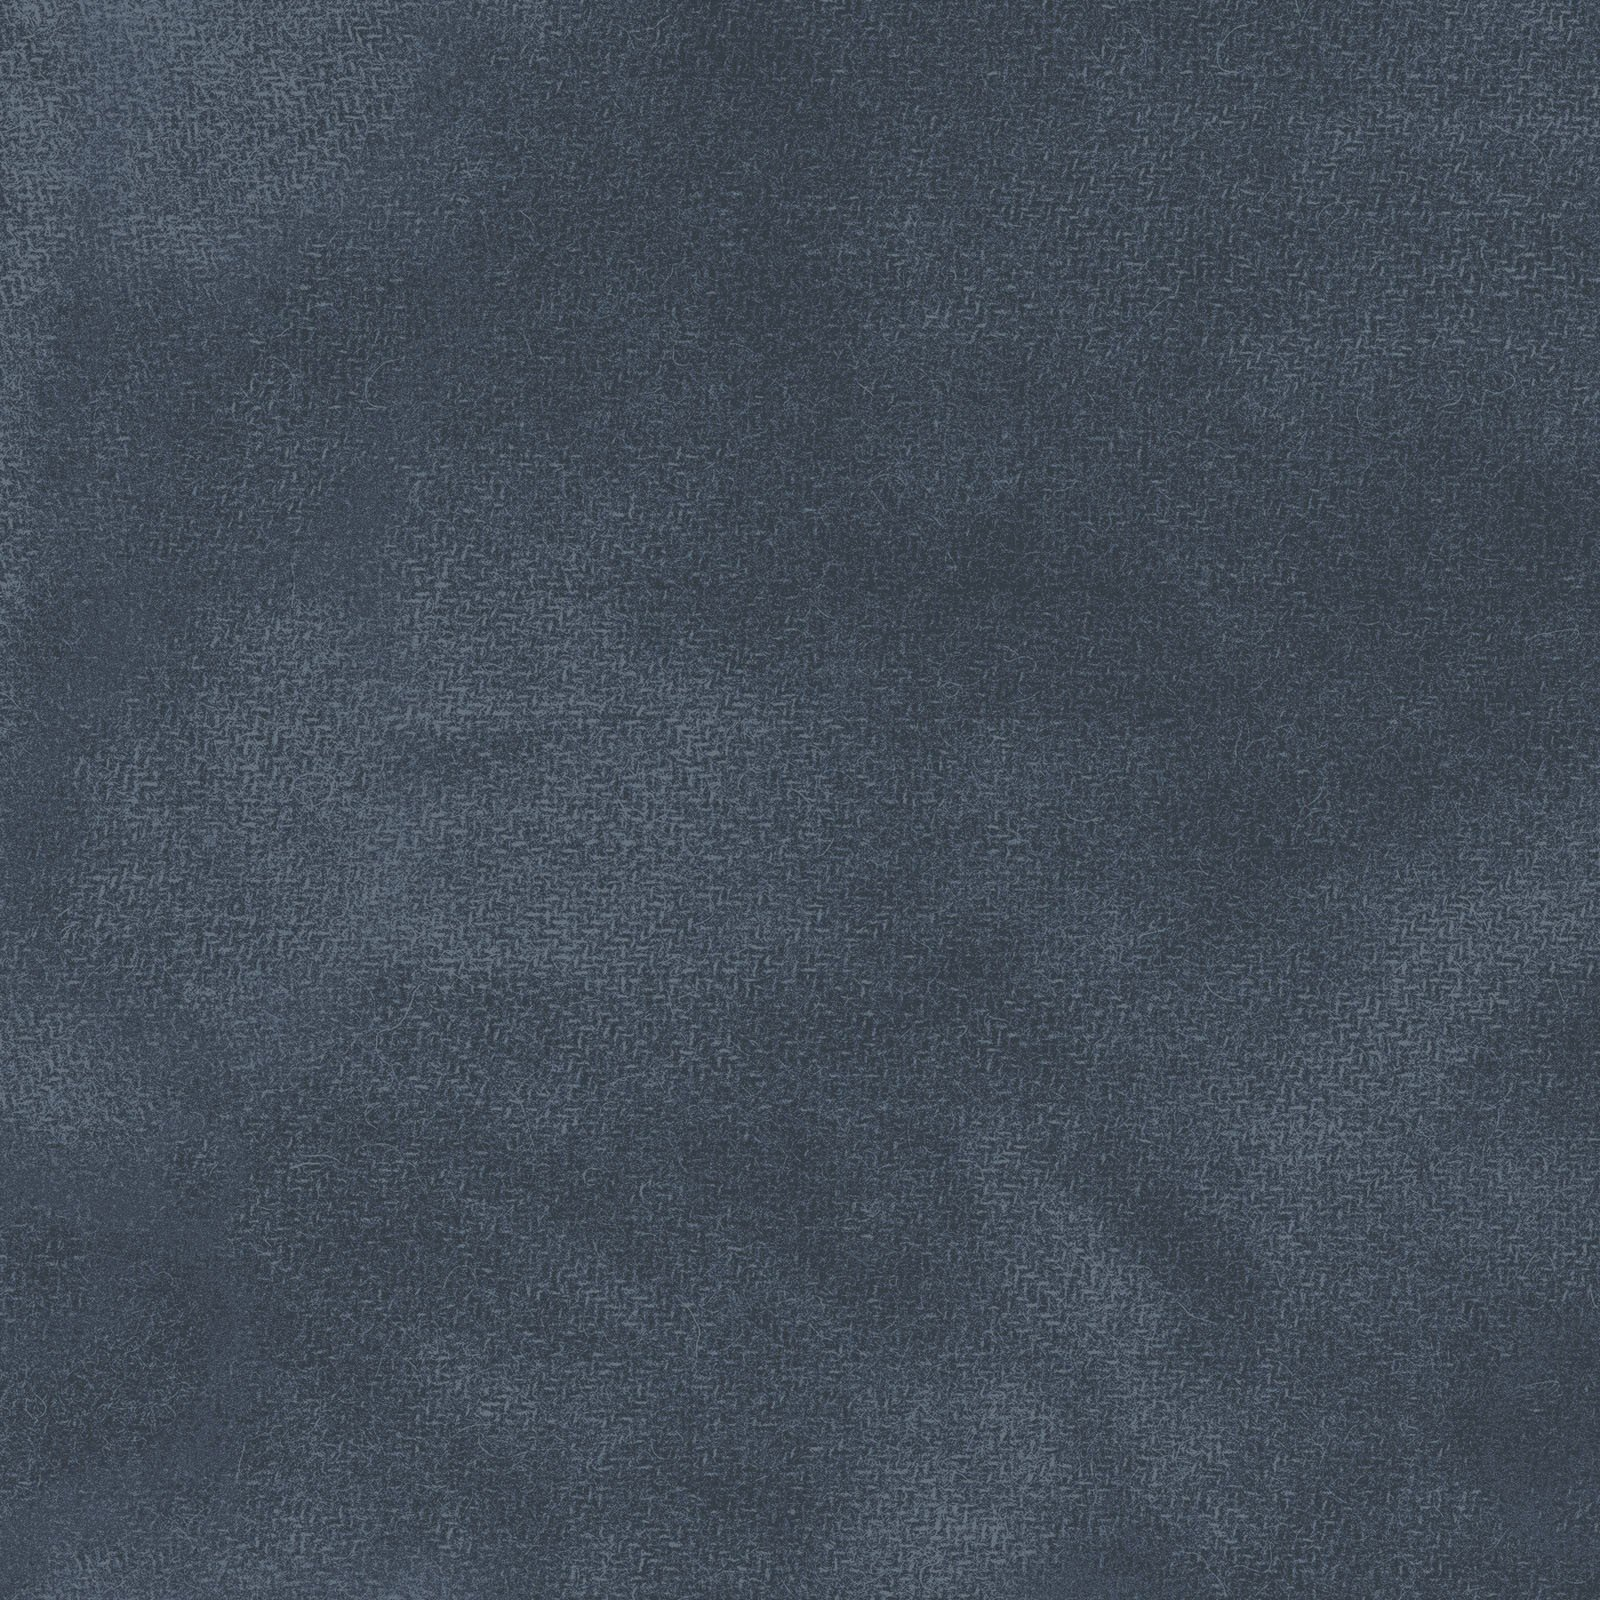 Woolies Flannel - Deep Sea Blue FQ<br/>Maywood Studio F9200-B